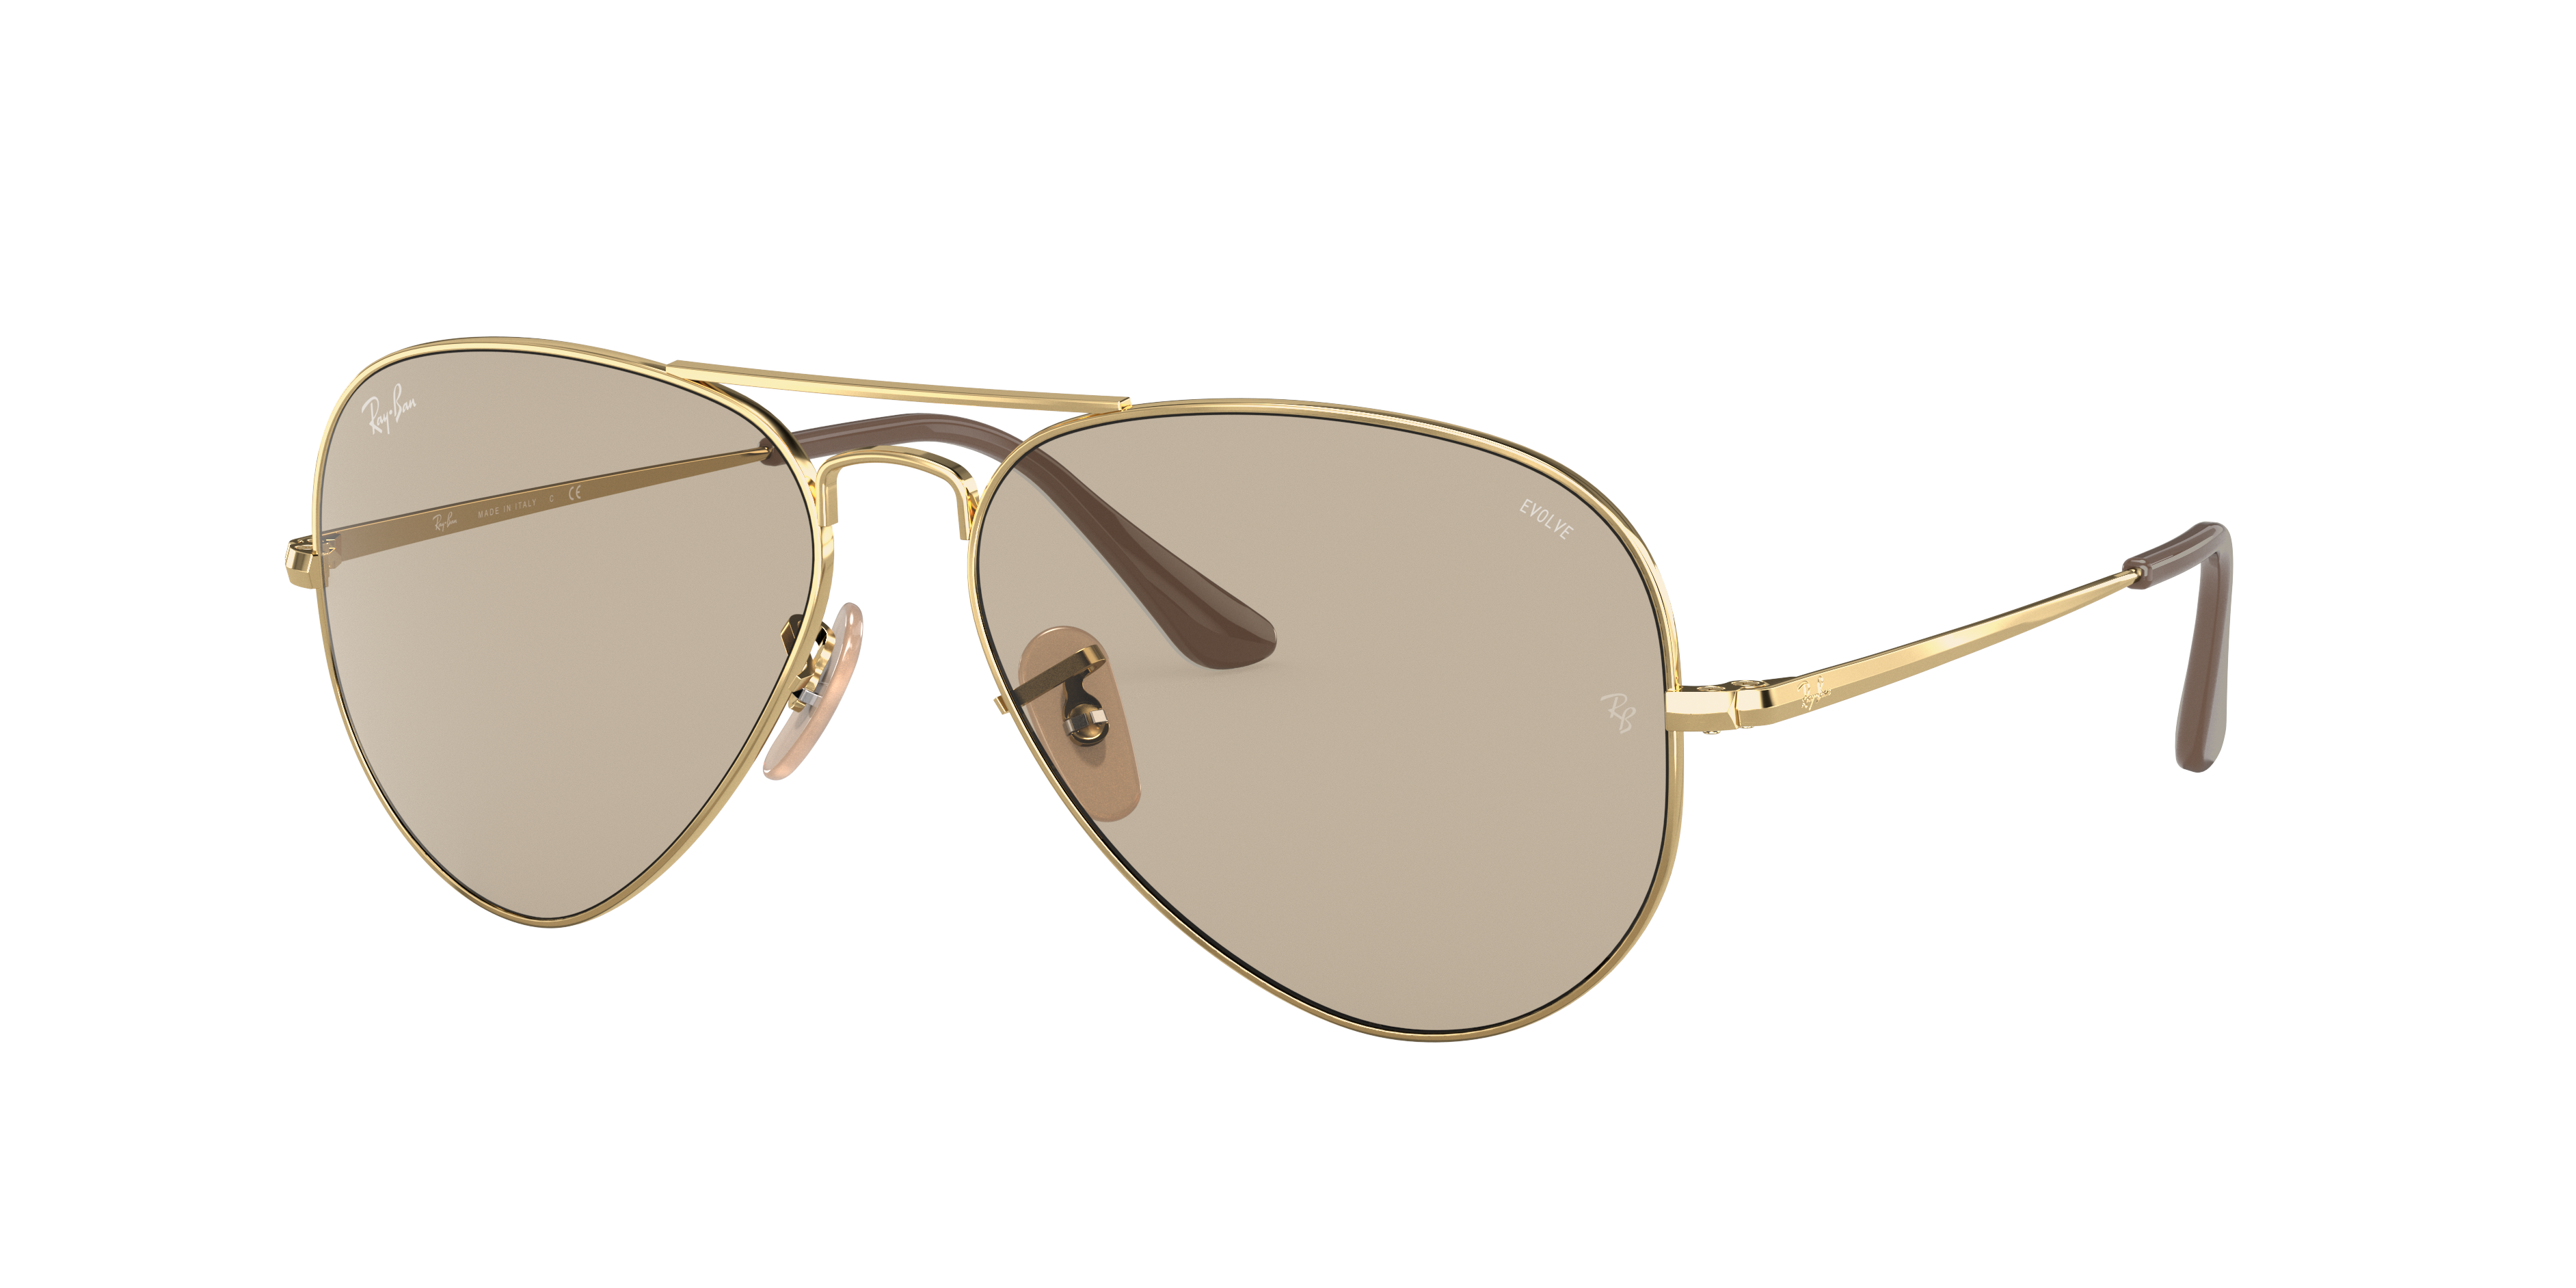 Ray-Ban Rb3689 Solid Evolve Gold, Brown Lenses - RB3689